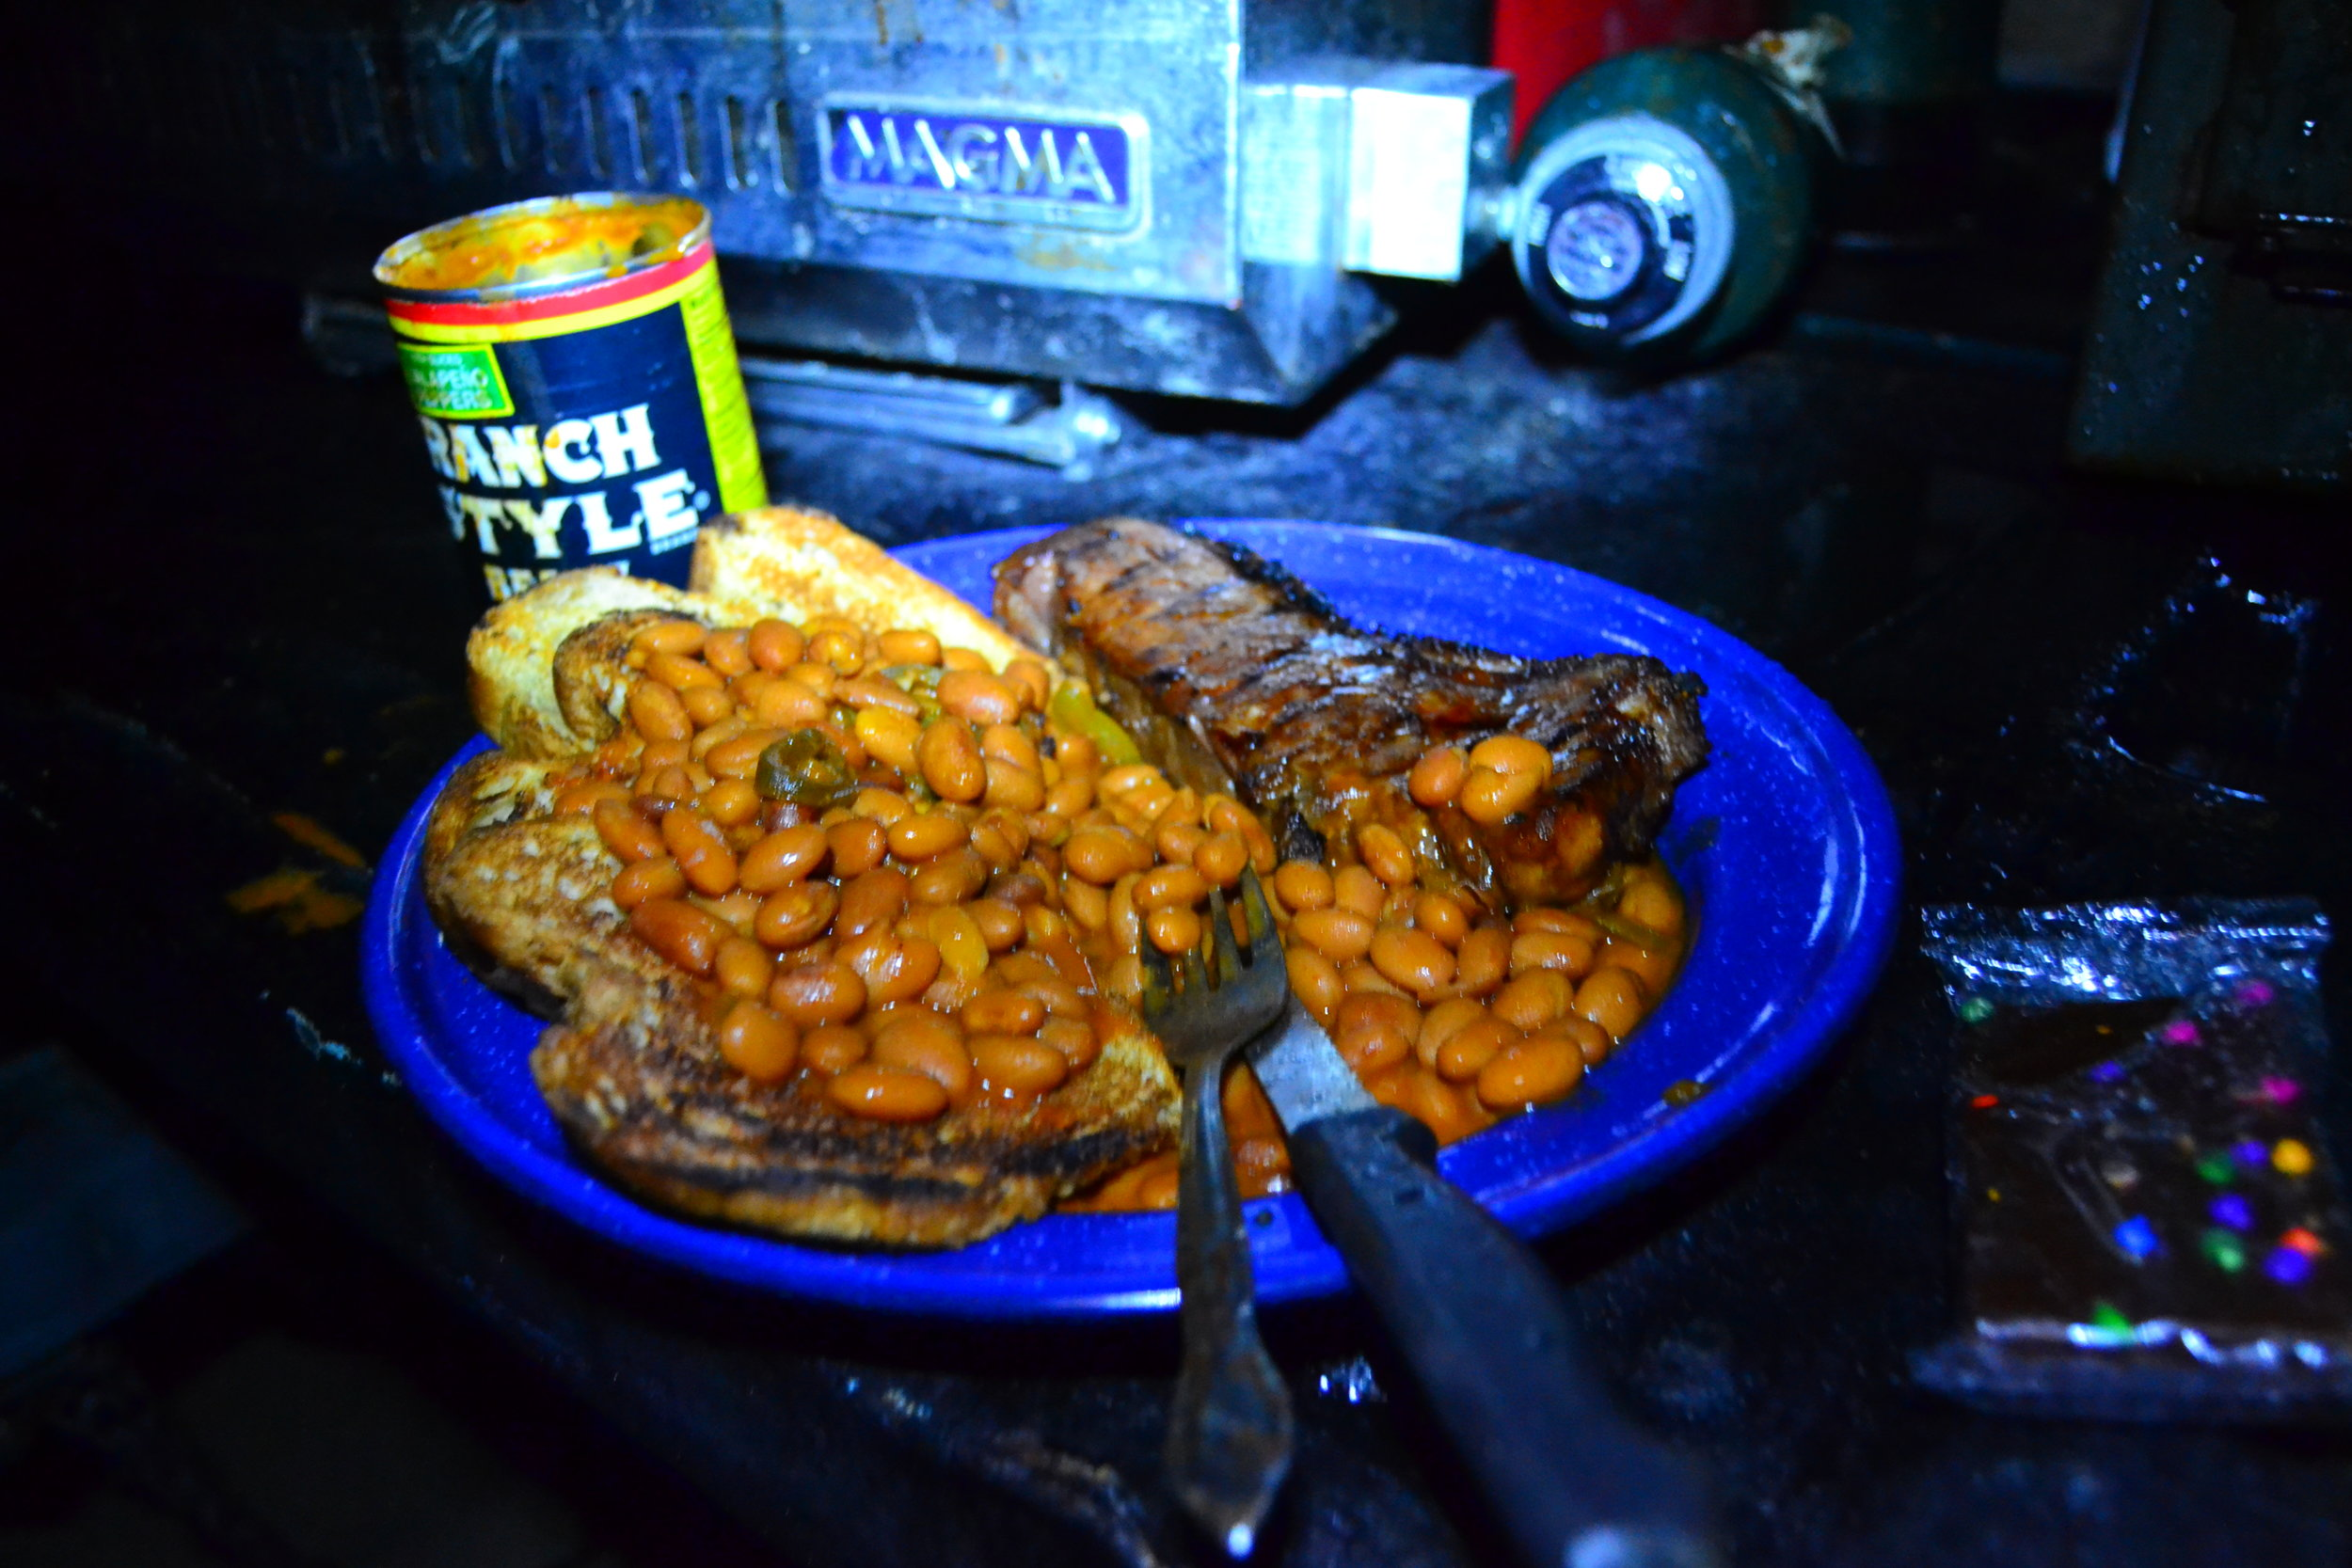 New York Strip and Ranch style beans!